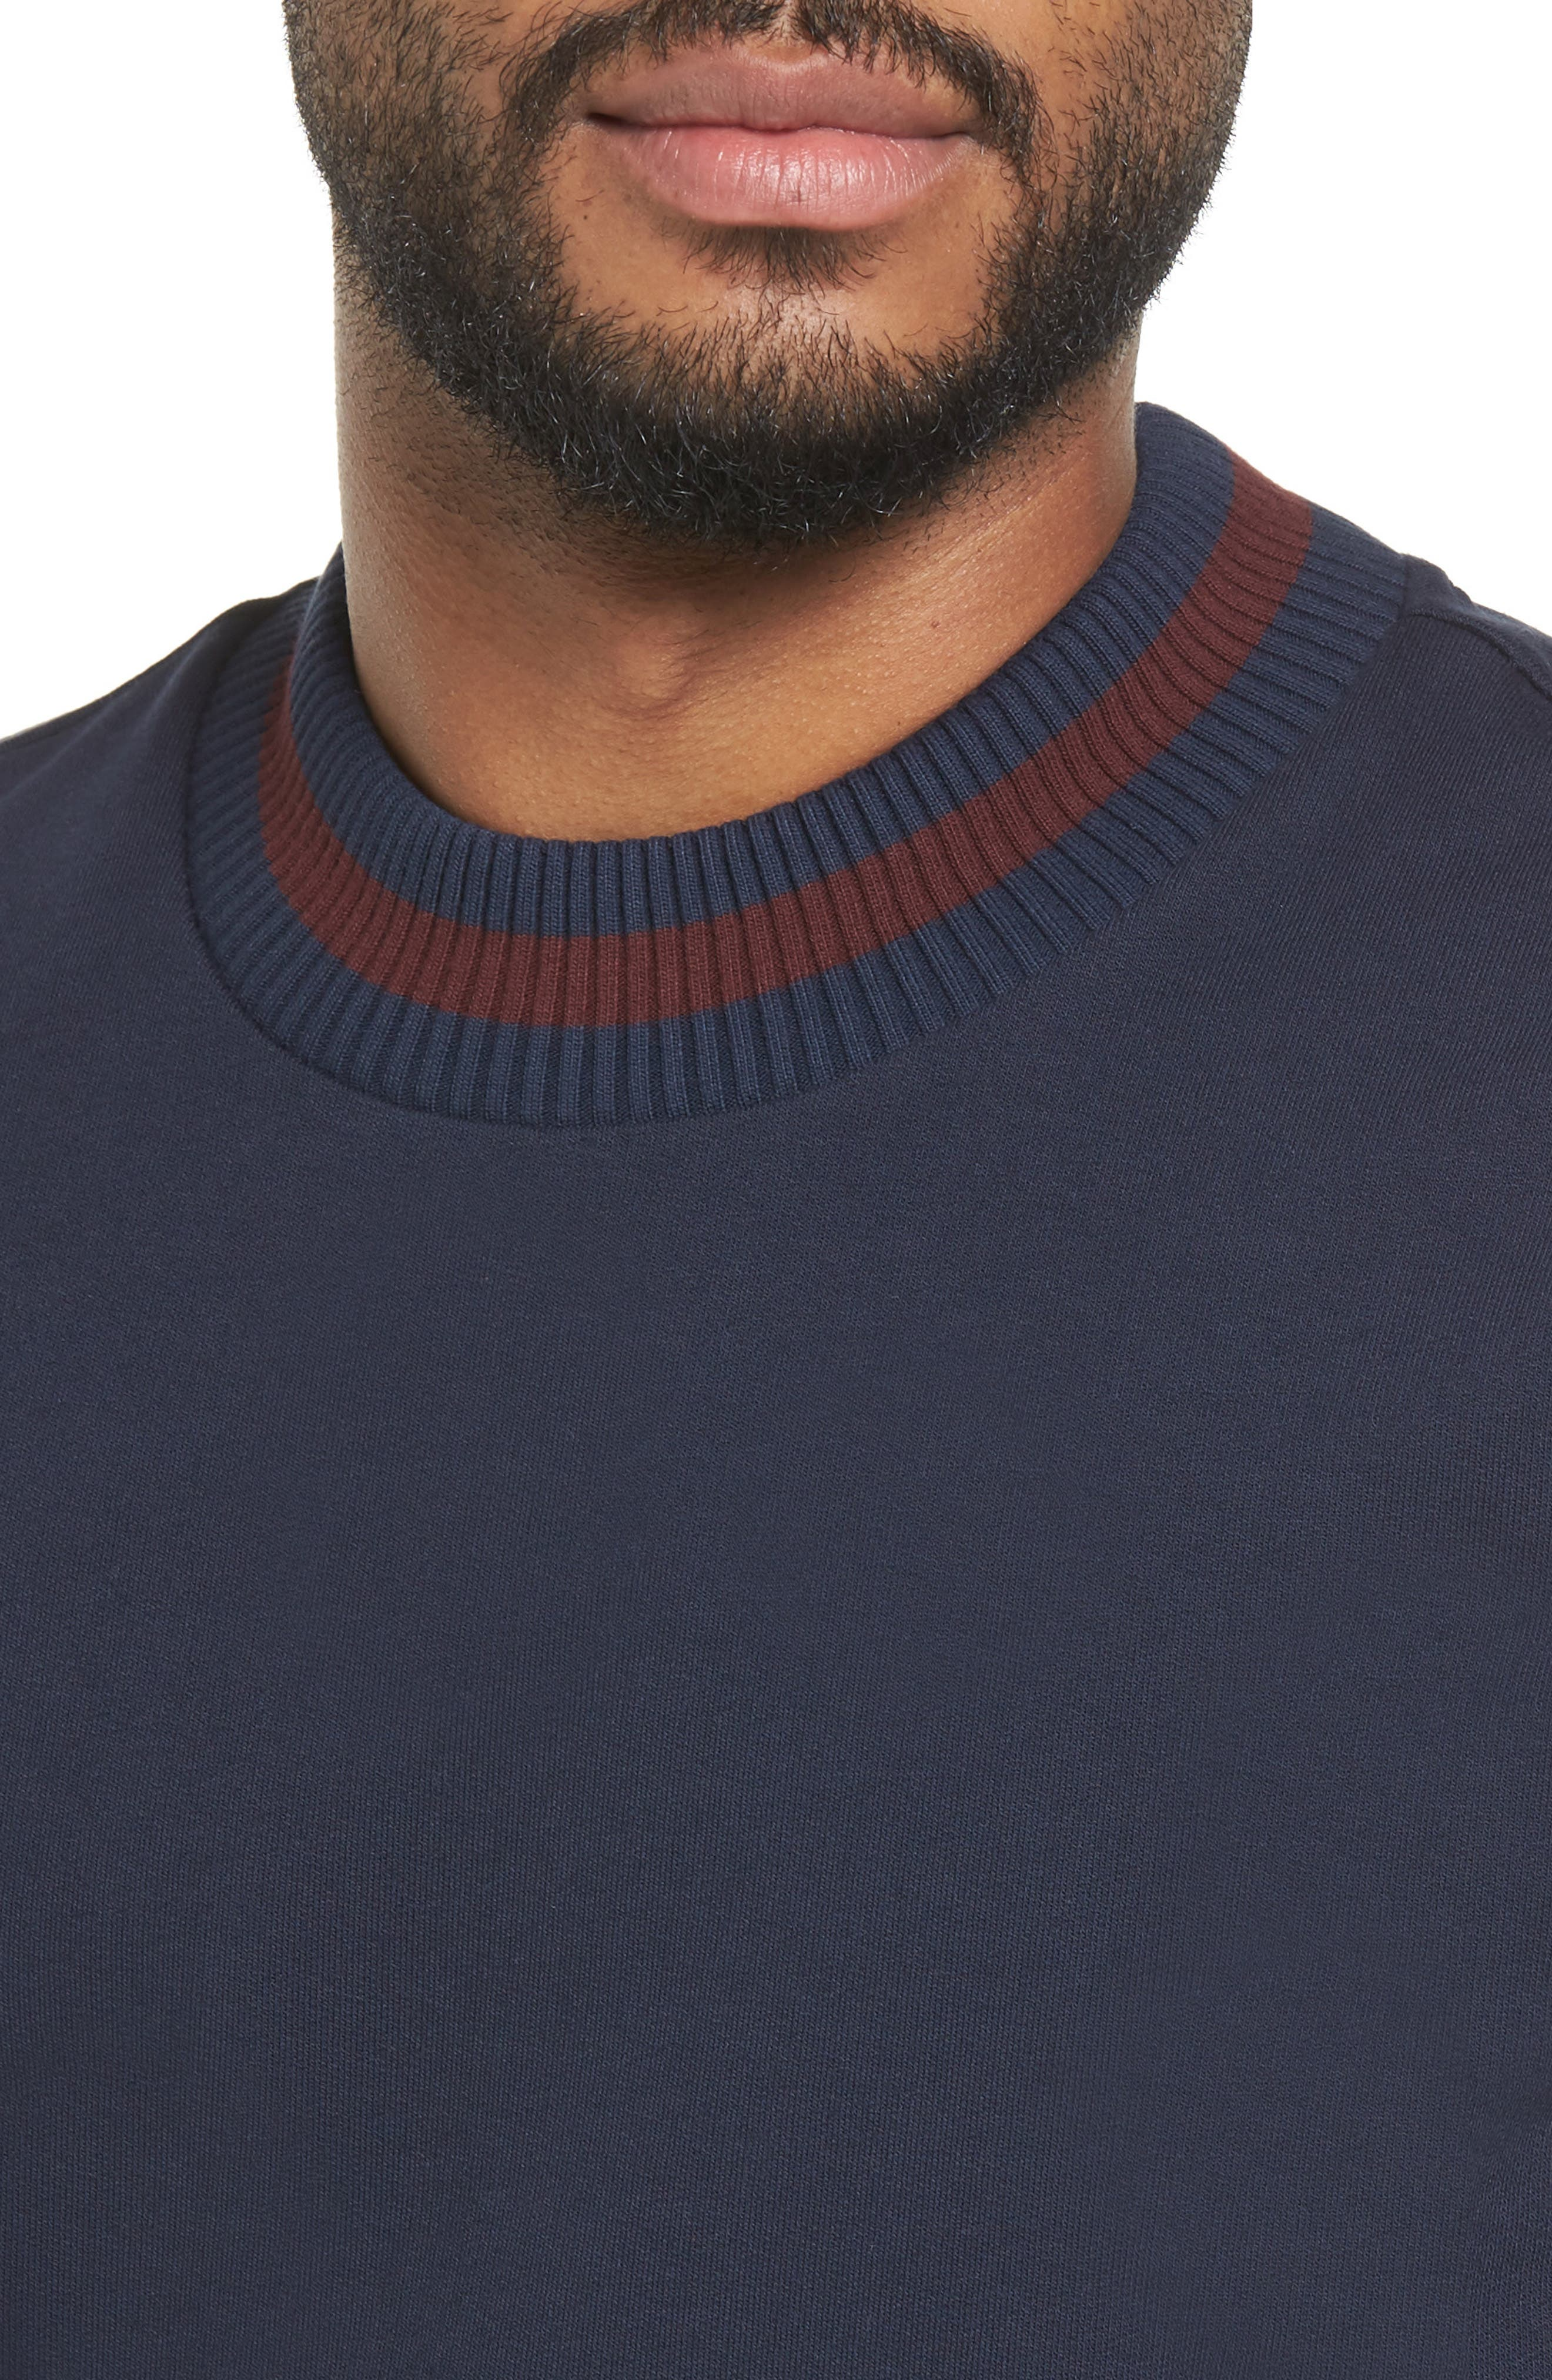 Skubic Slim Crewneck Sweatshirt,                             Alternate thumbnail 4, color,                             Navy